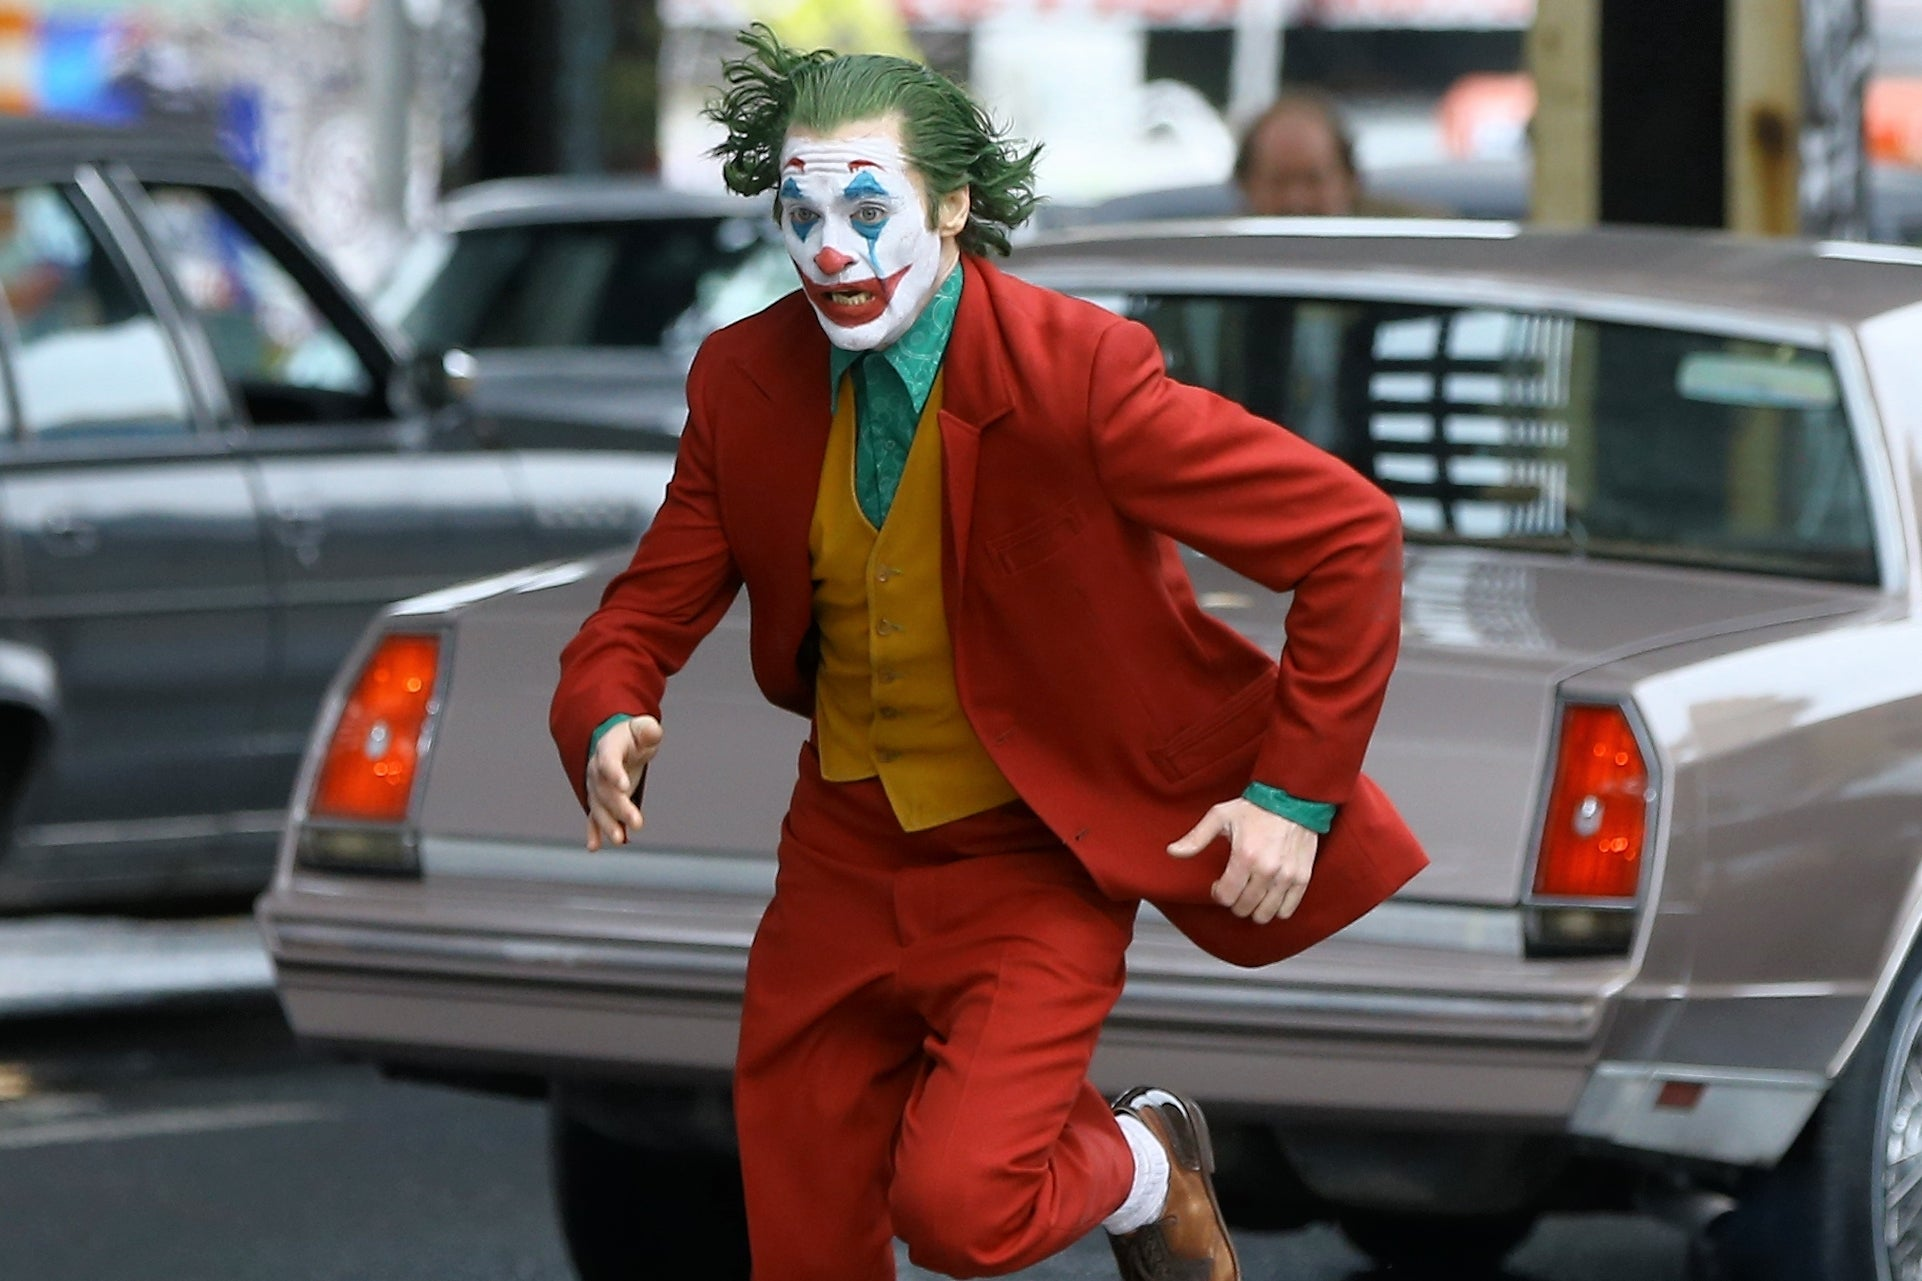 Army warns soldiers to be ready for potential violence by incels at 'Joker' screenings: reports